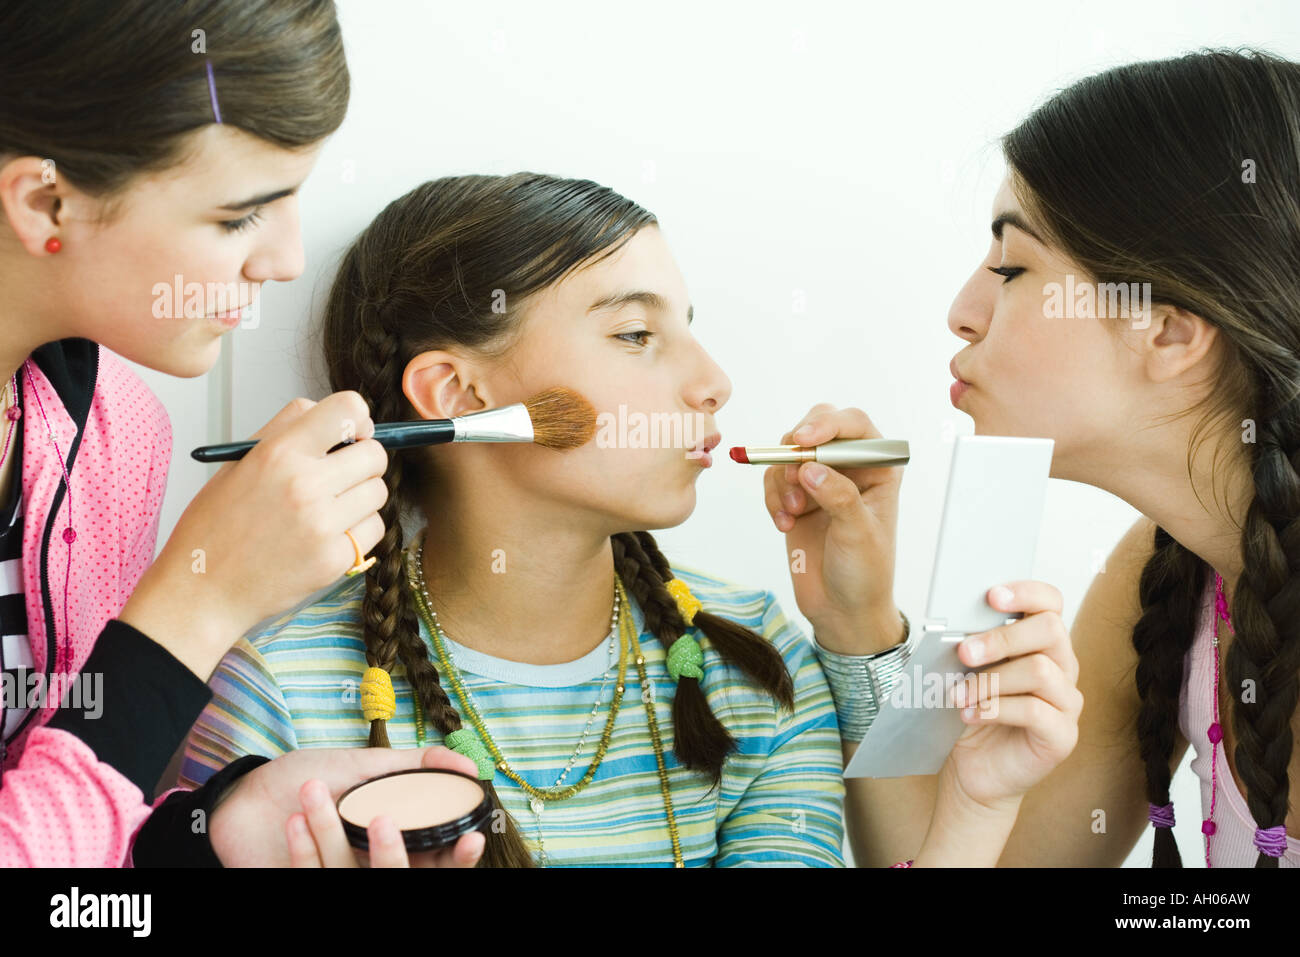 Two young female friends putting make-up on younger girl - Stock Image